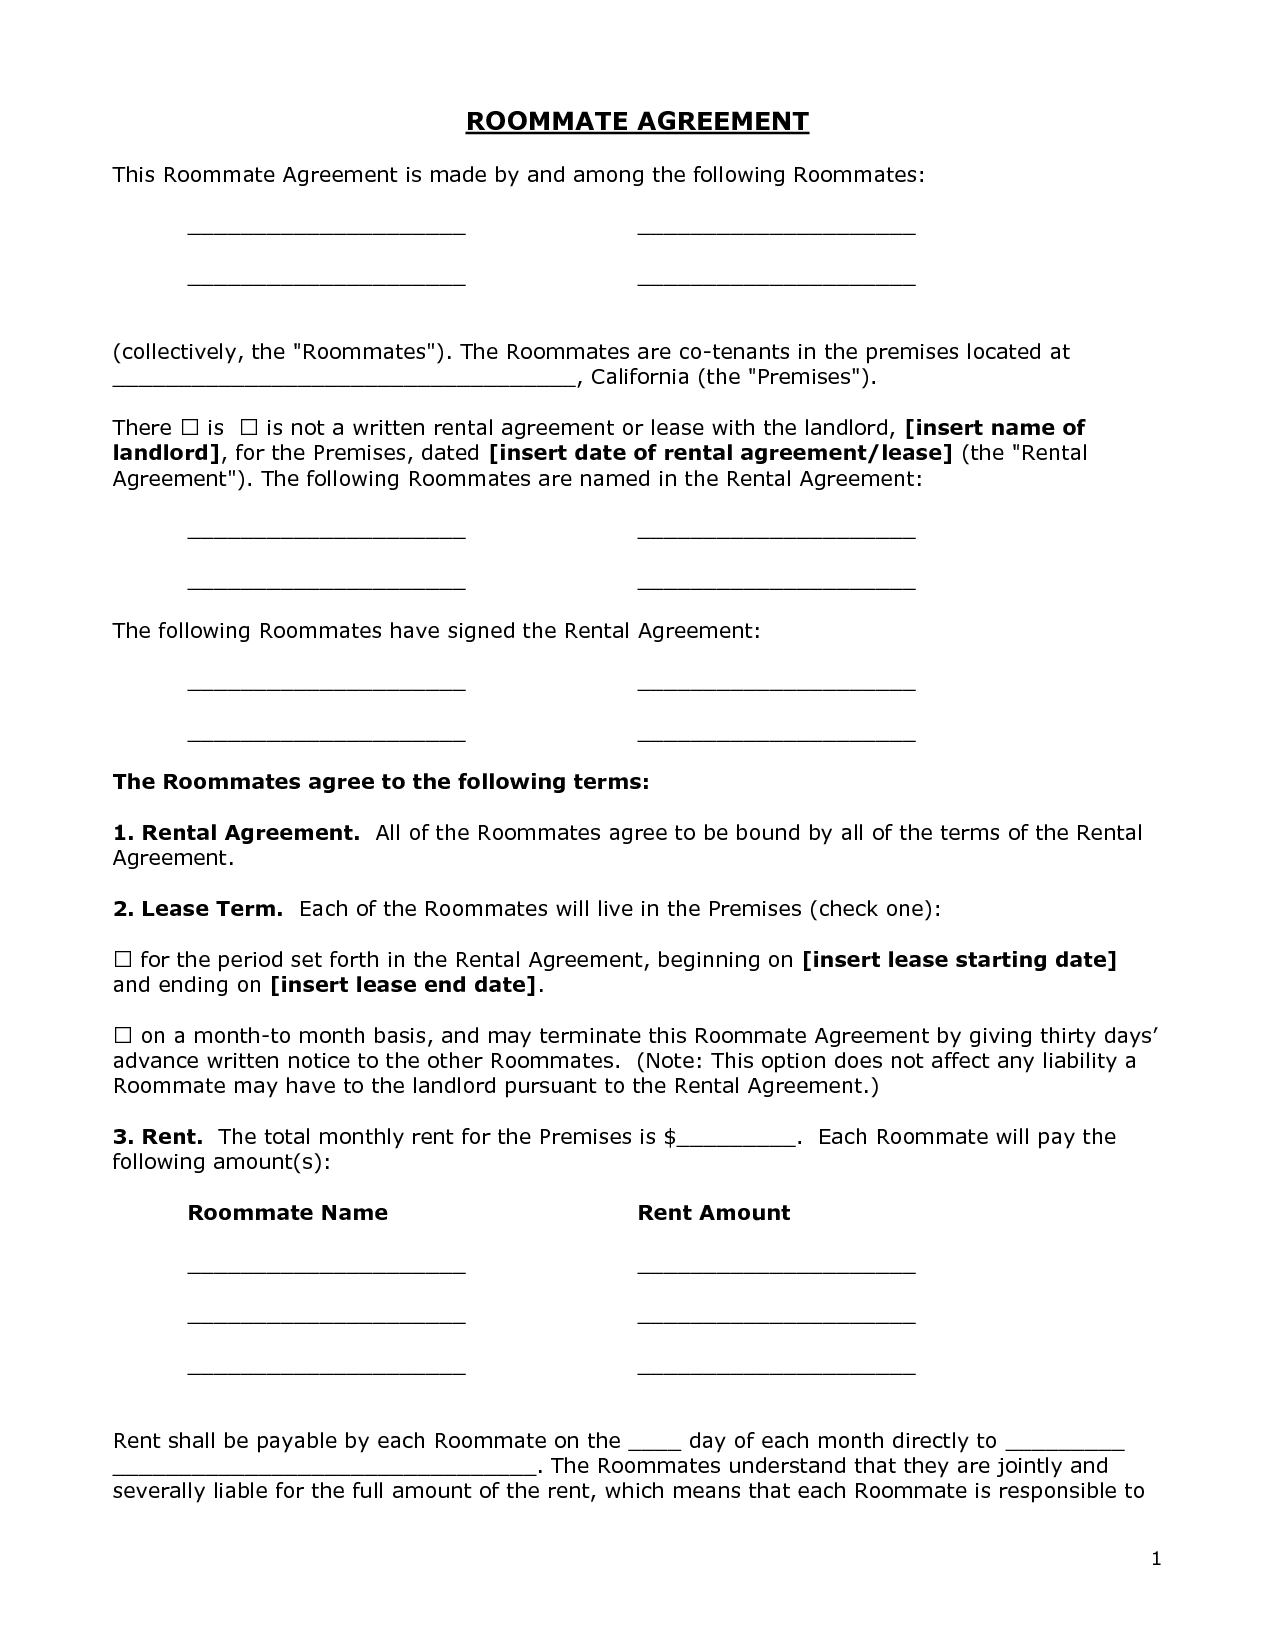 roommate agreement template free - renters agreement form doc by bgf31721 roommate